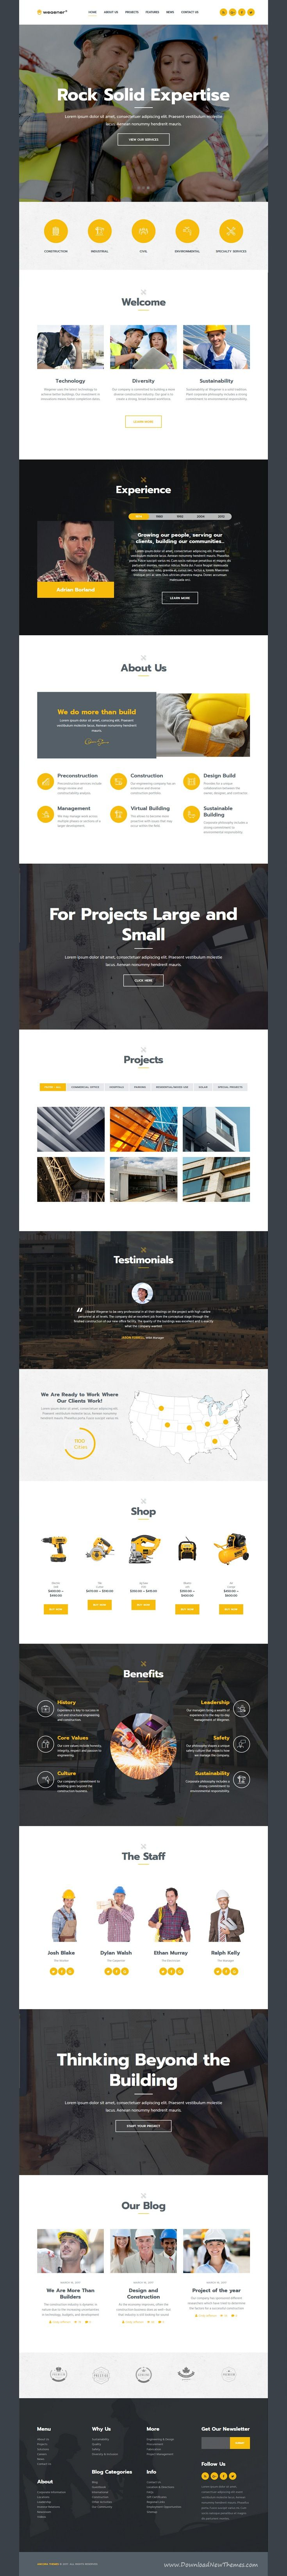 Wegener is clean and modern design 3in1 responsive WordPress #template for #construction and #engineering company website to live preview & download click on Visit